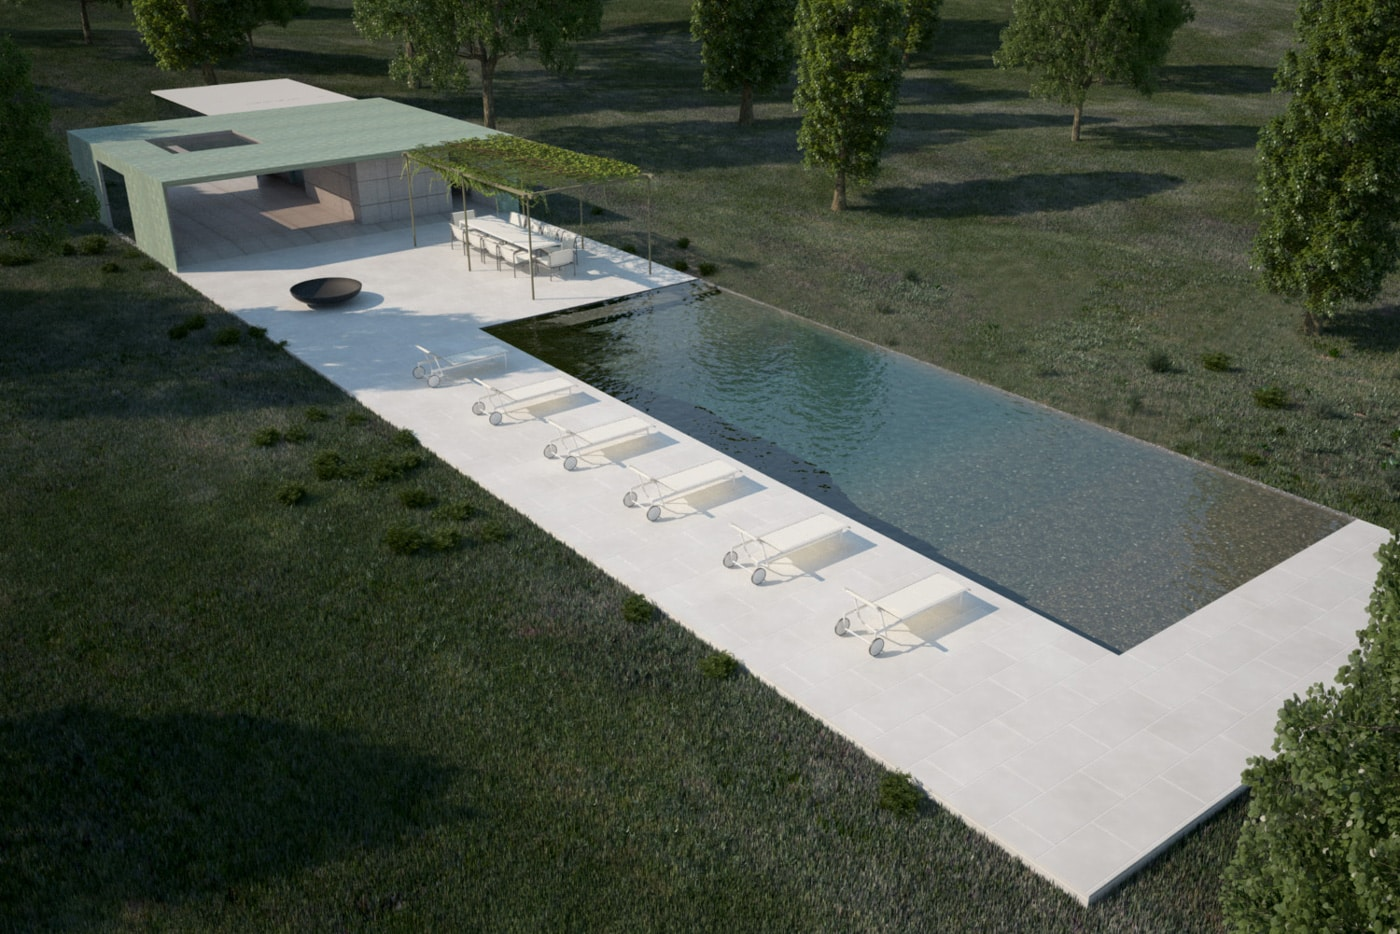 Shelter Island Pool Pavilion - project by Reddymade Architecture & Design